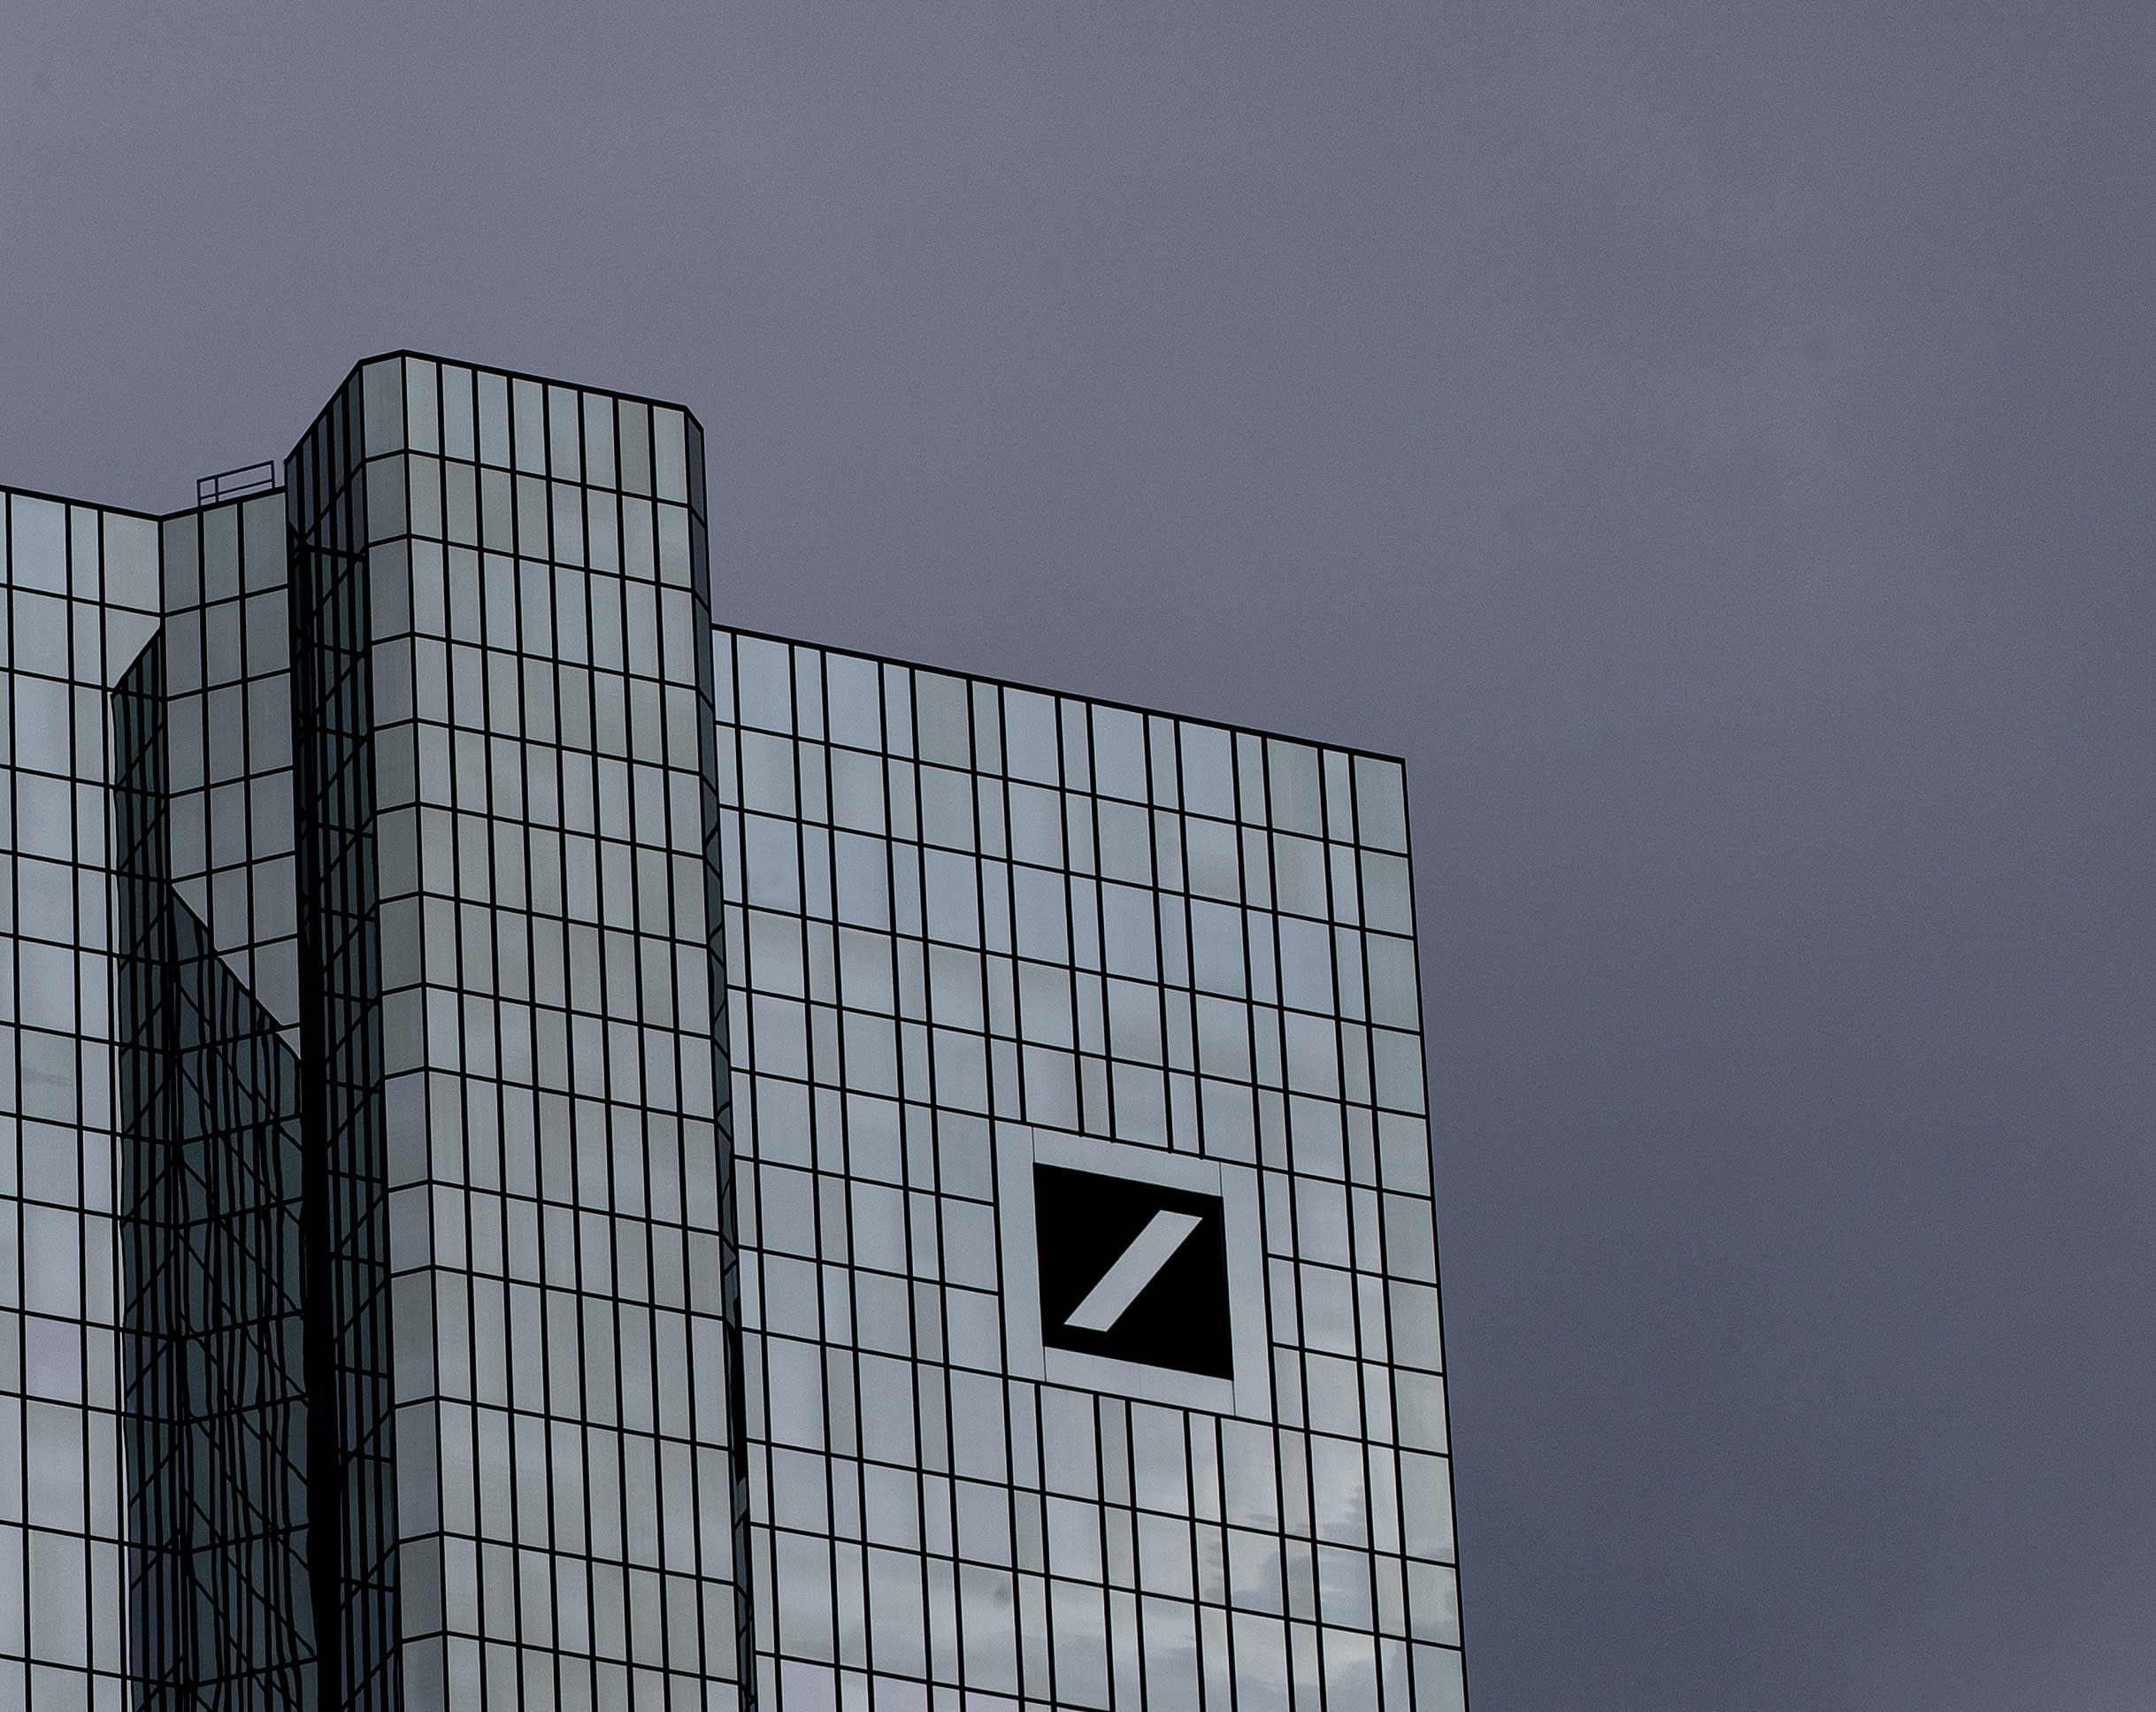 Deutsche Bank to axe 18,000 jobs